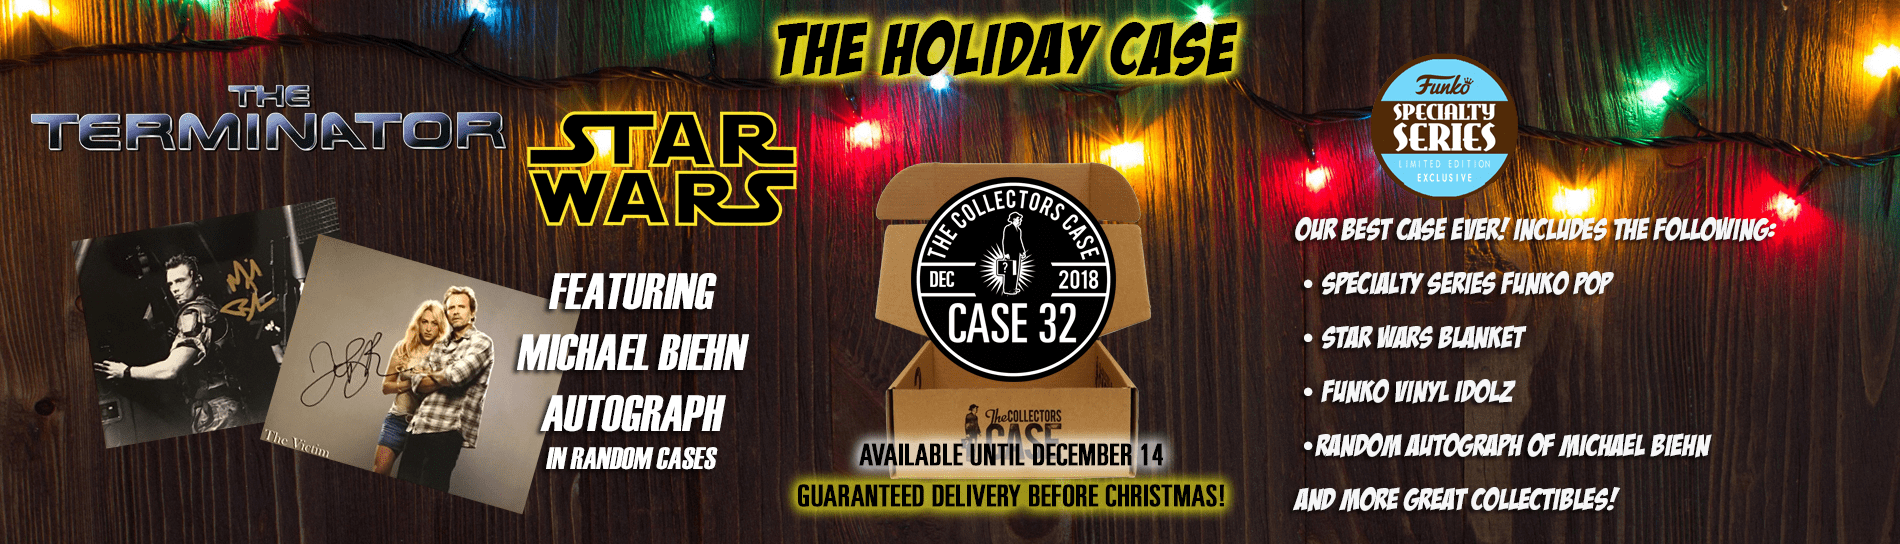 The Collectors Case December 2018 Spoilers!